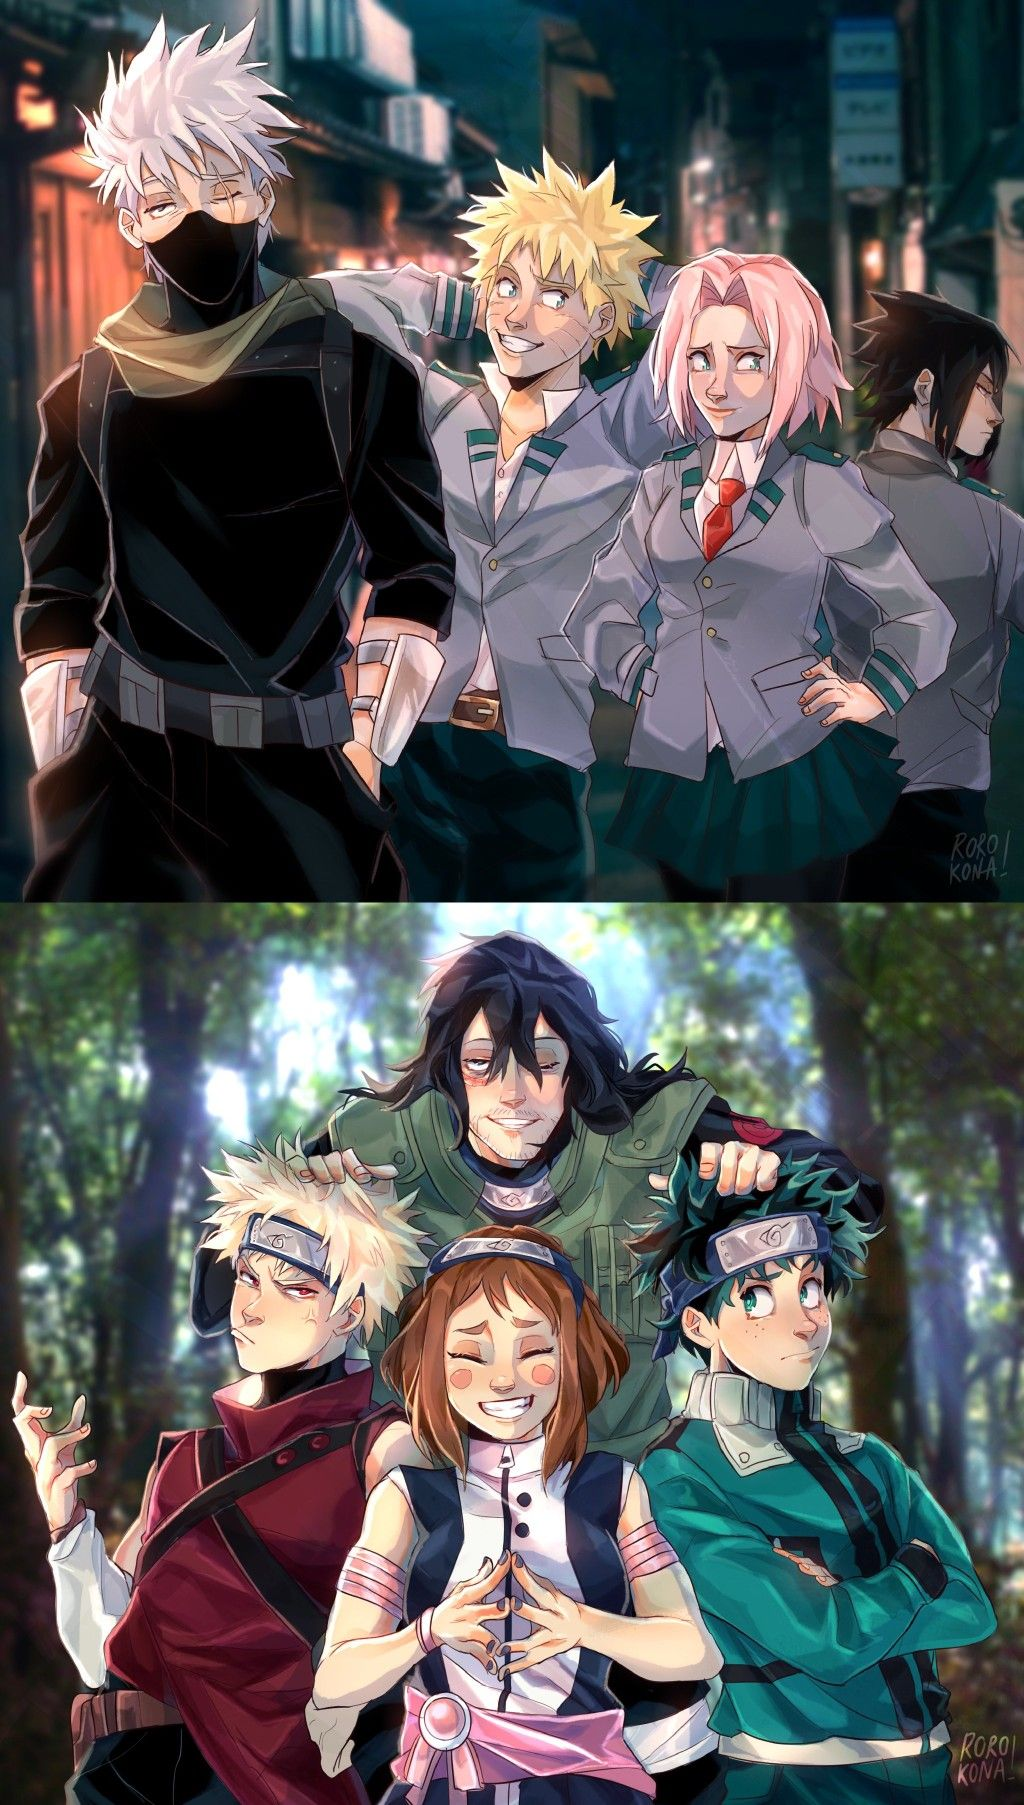 Naruto X MHA Crossover in 2020 Anime crossover, Anime